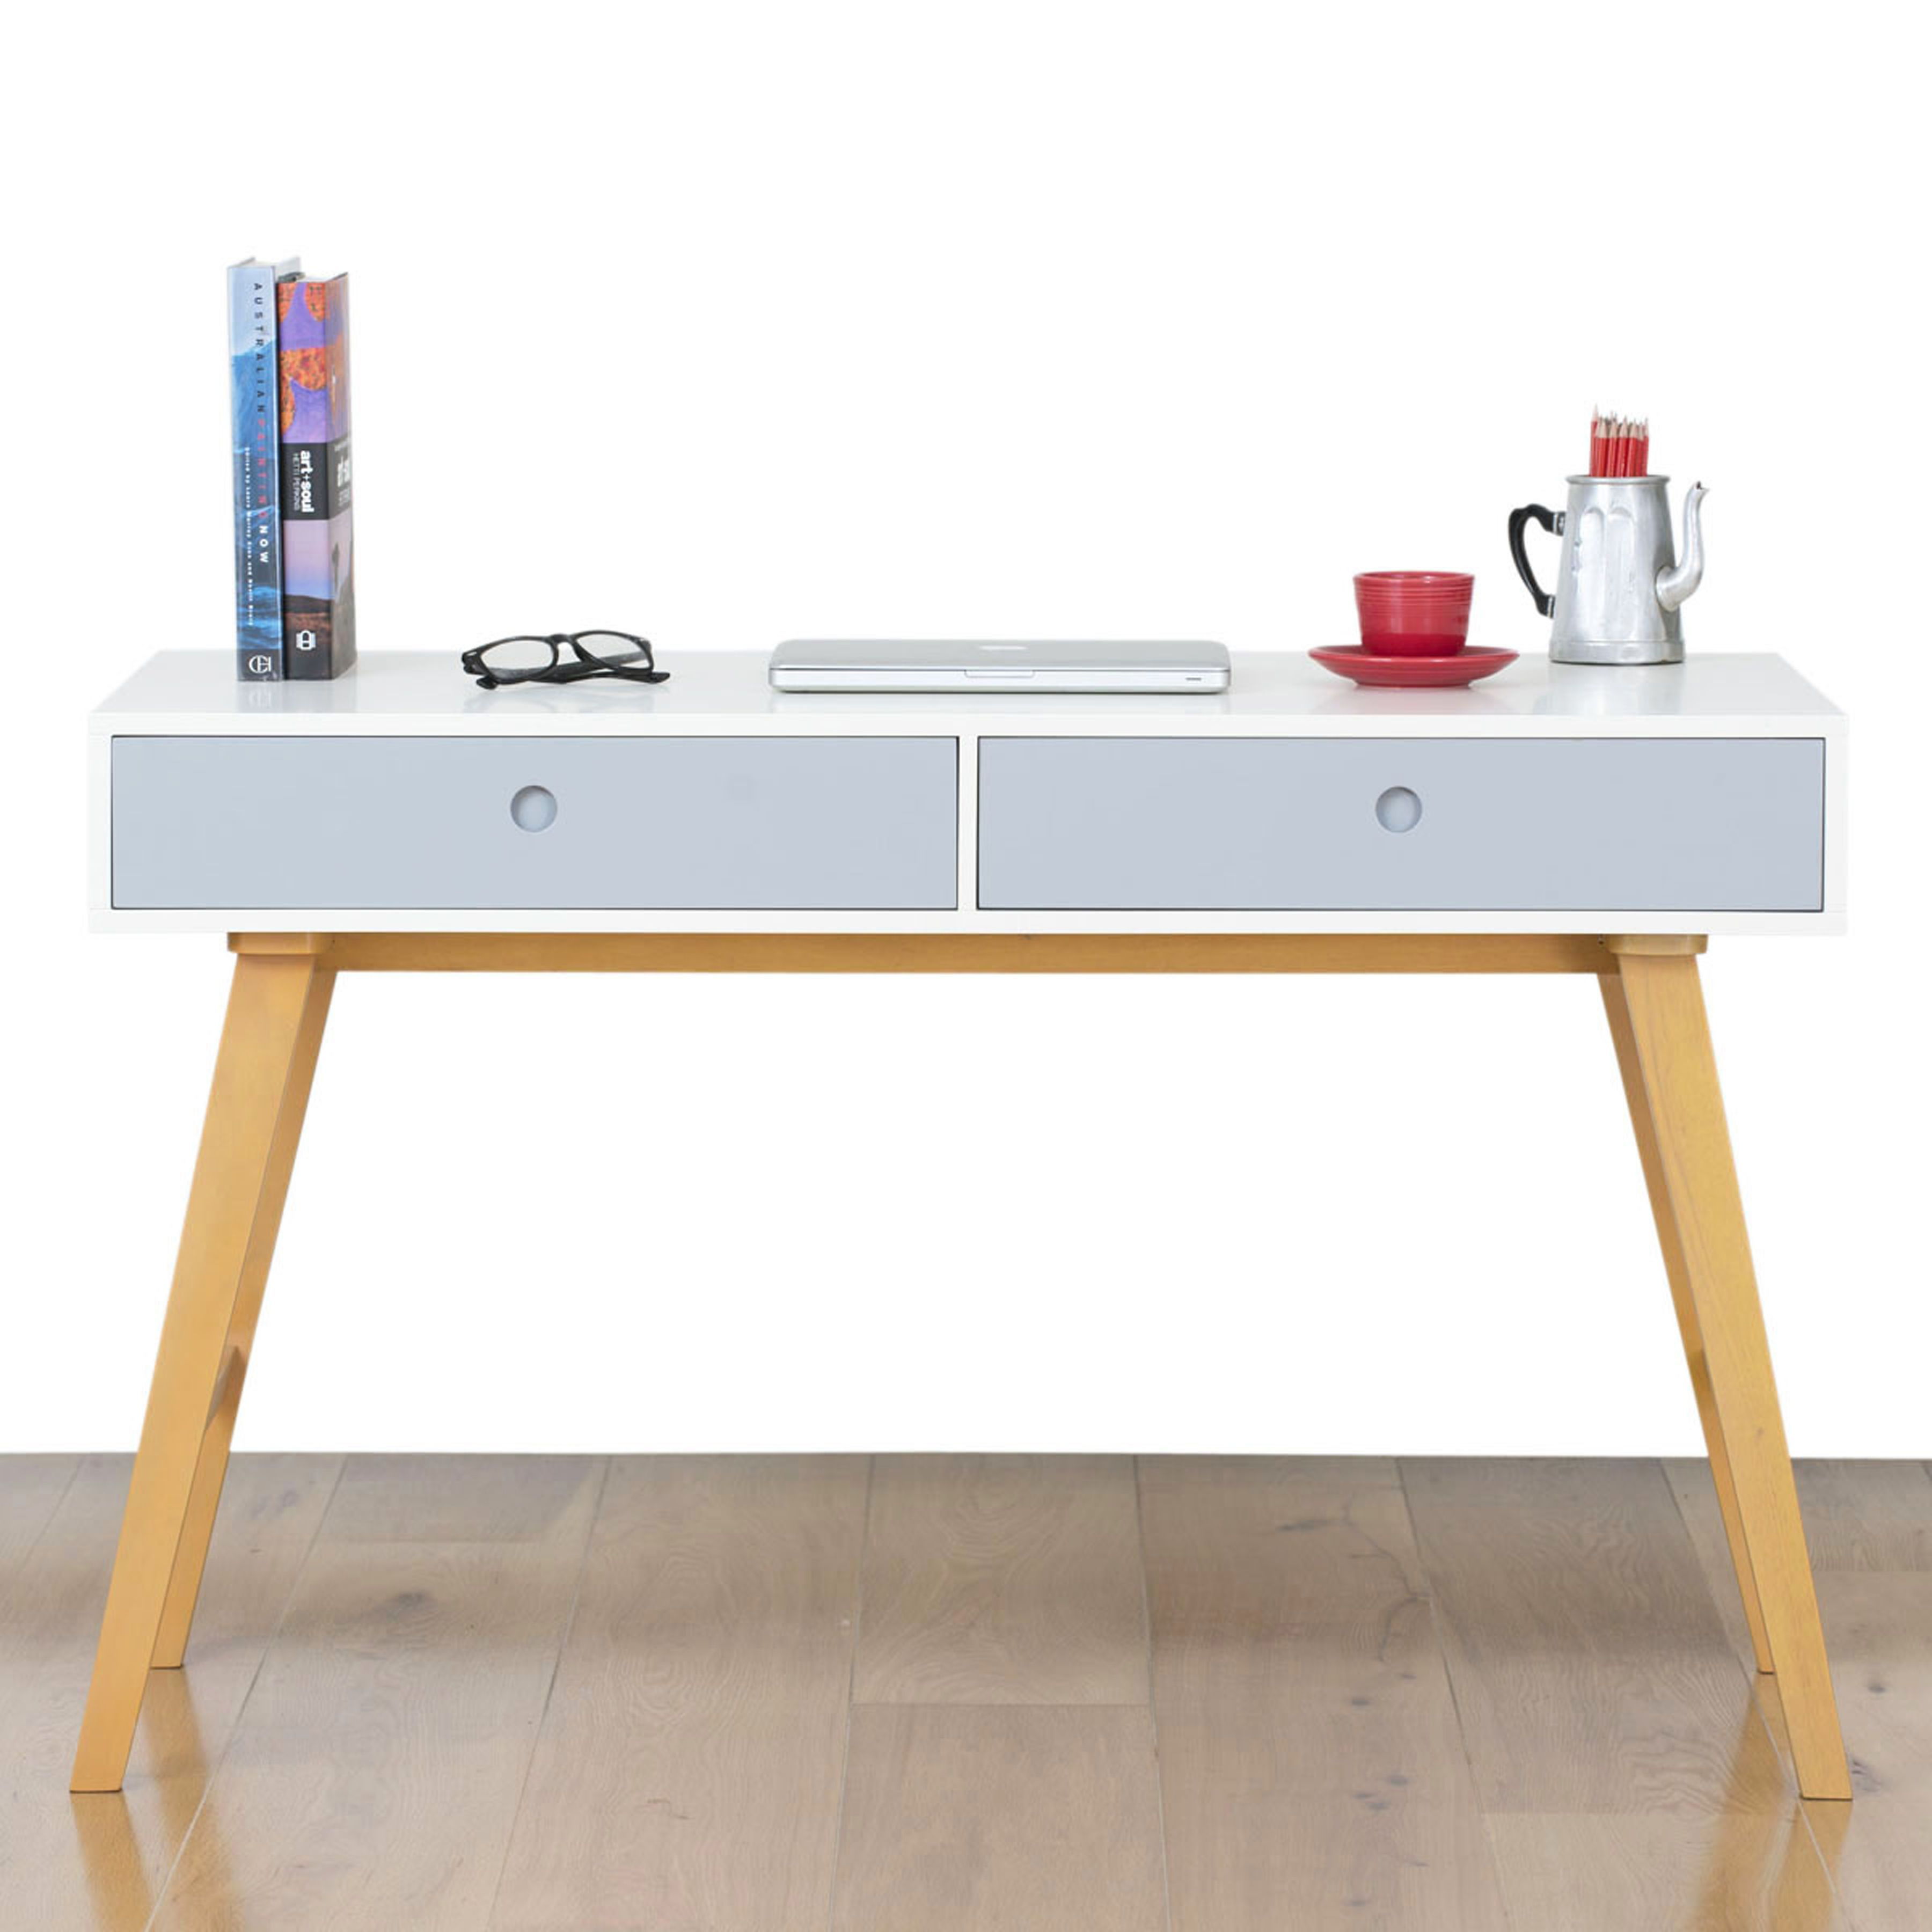 Countess Scandinavian Style fice Desk Warm White Blue